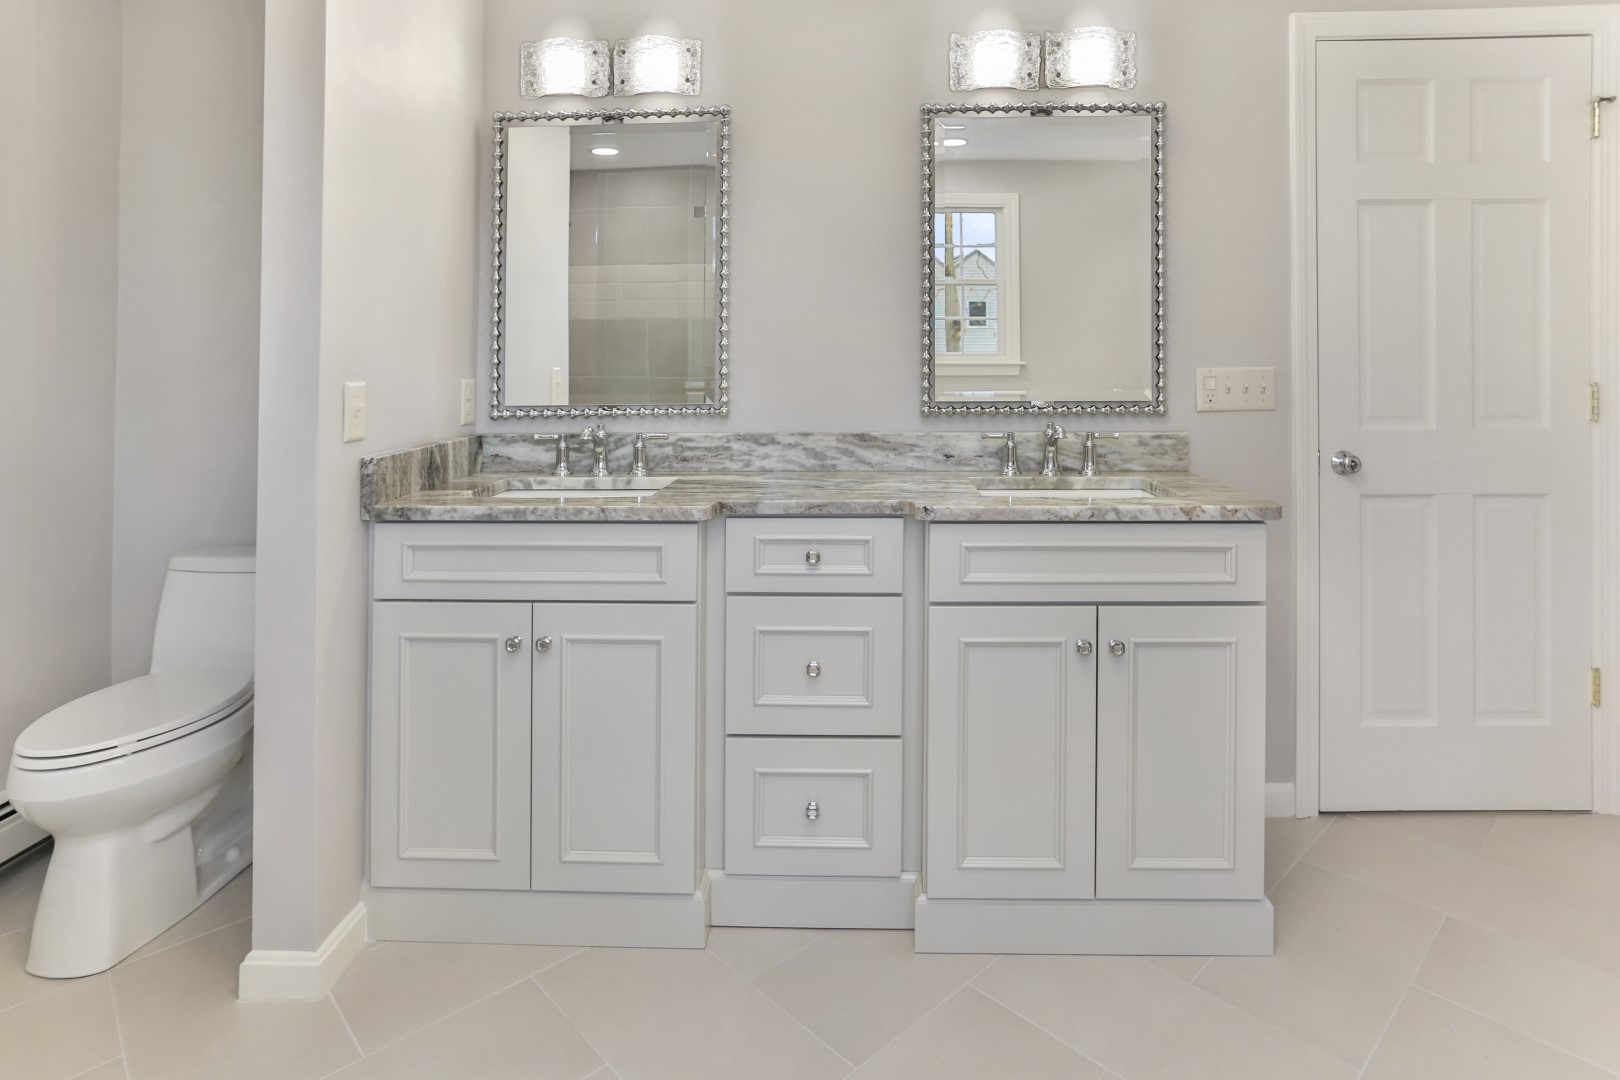 Residential - Master Bath Renovation 3.jpg